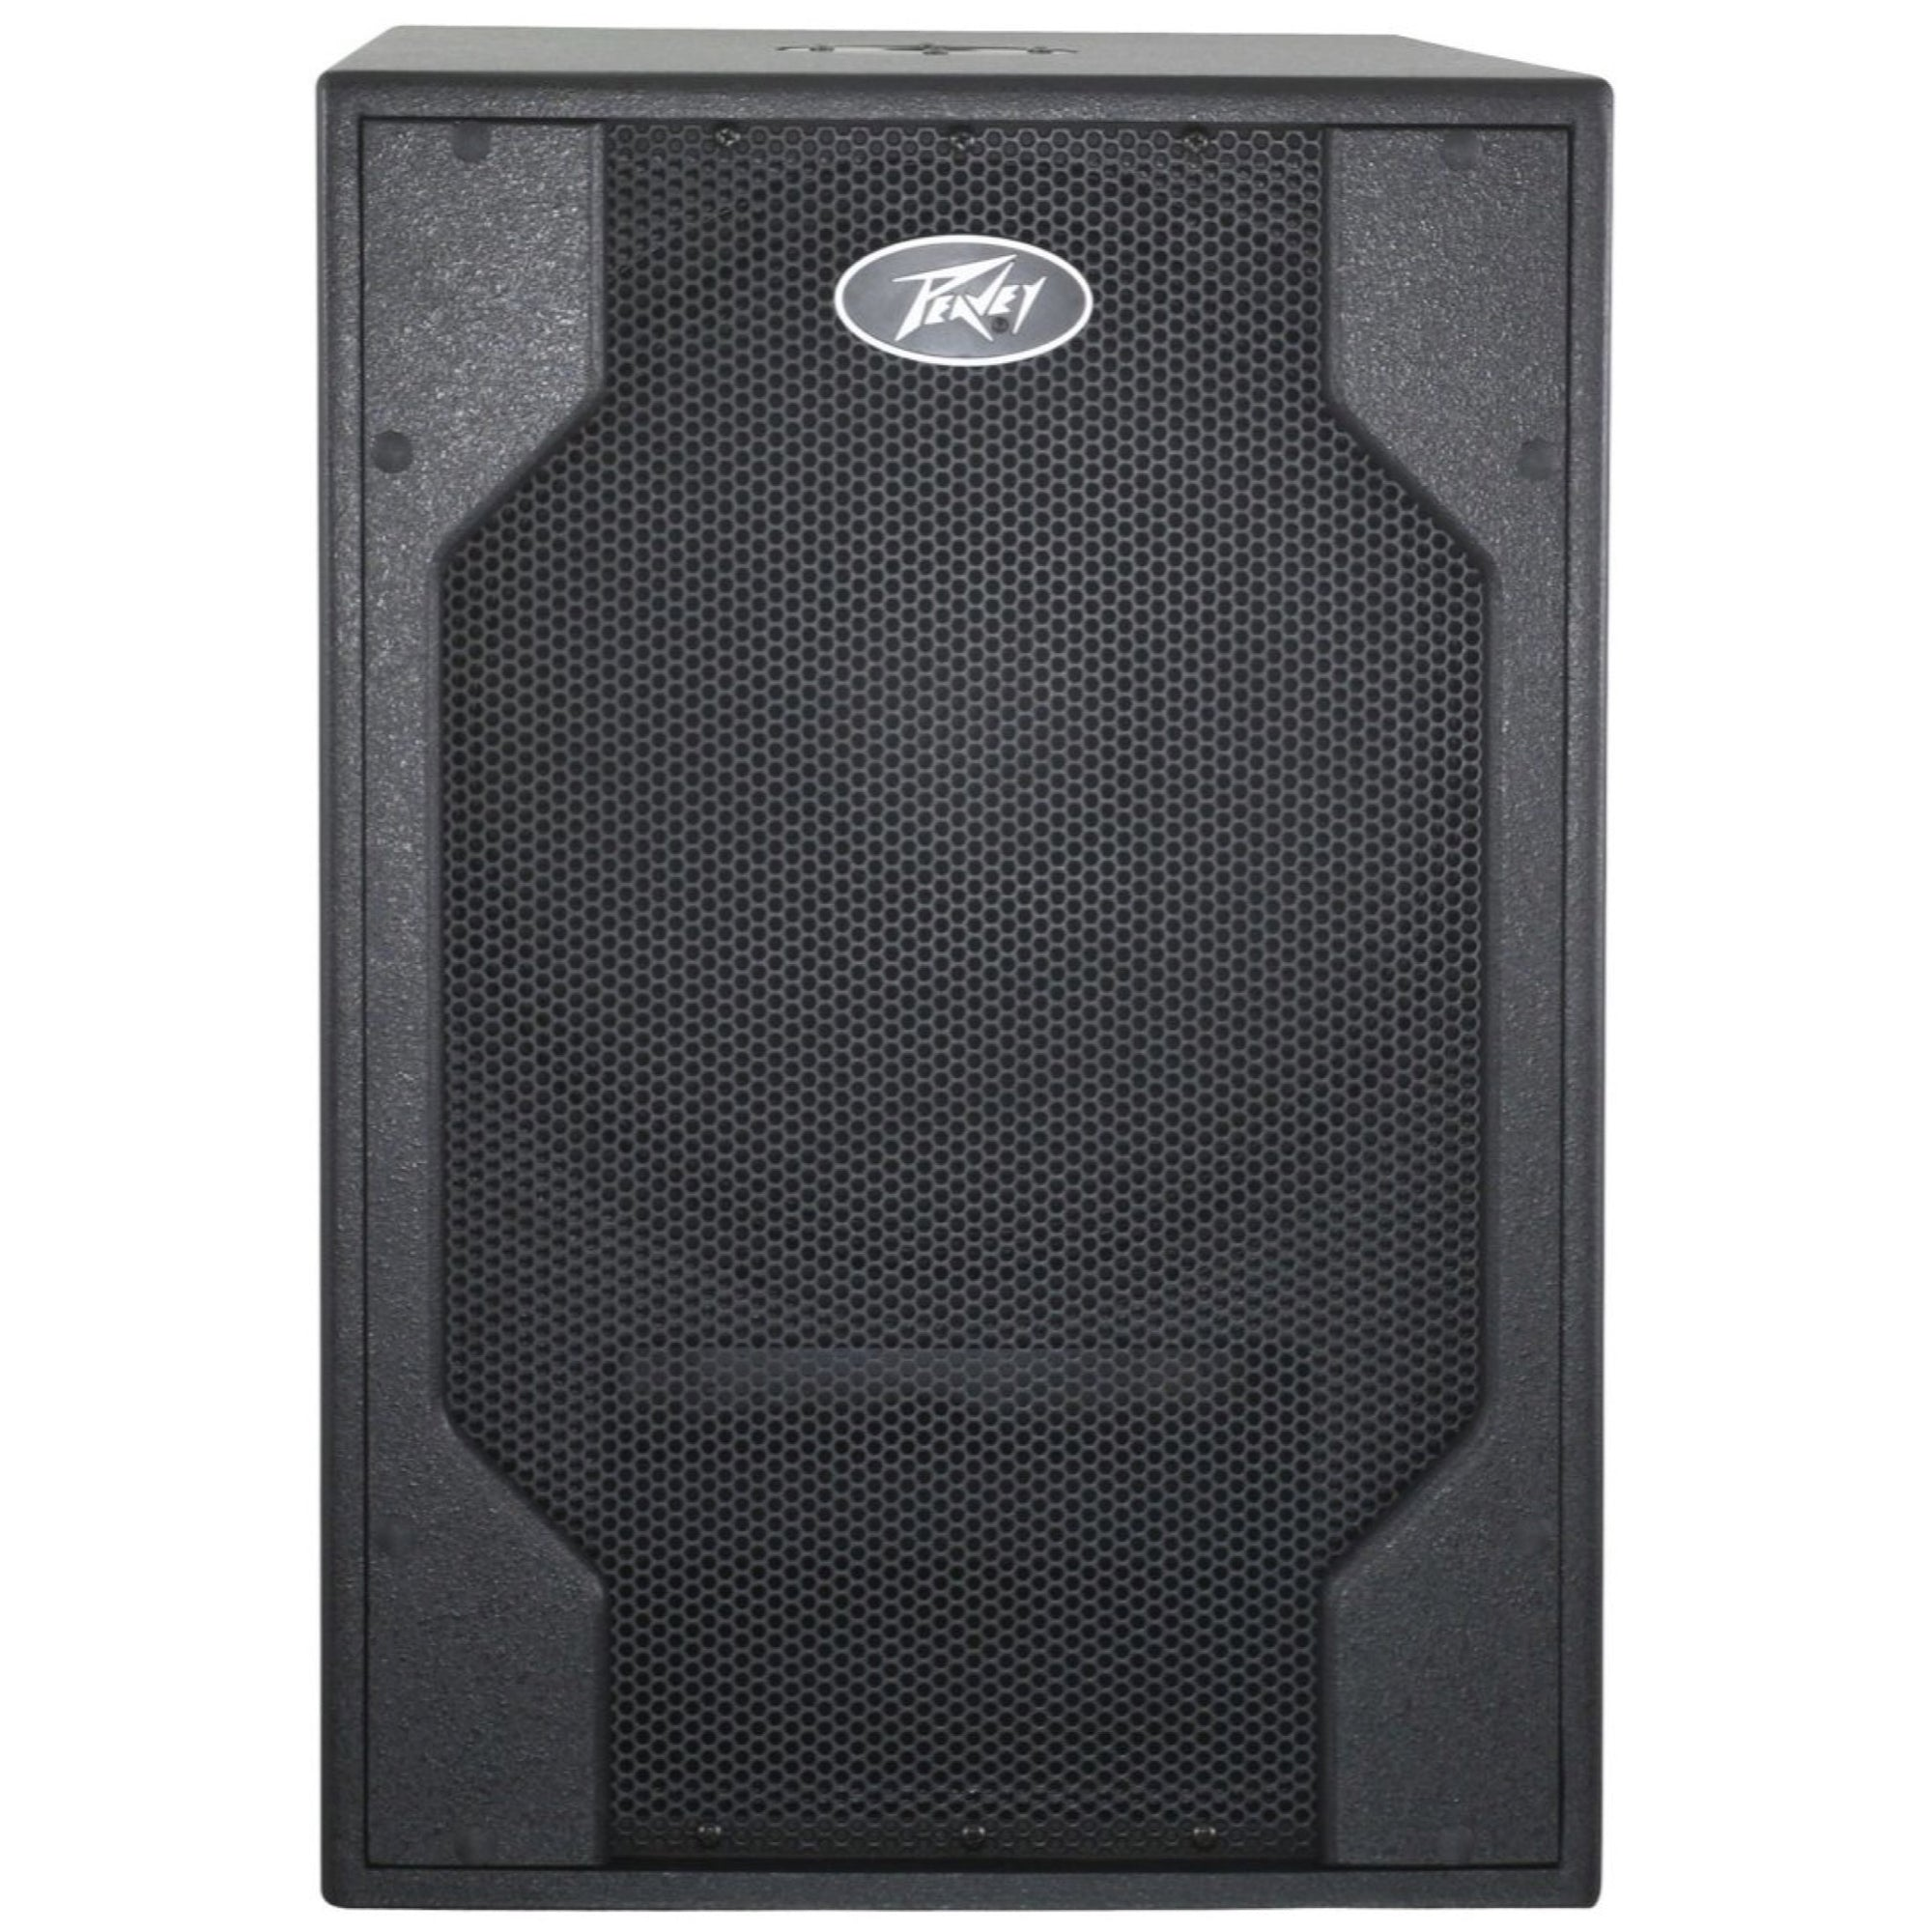 Peavey PVXp Sub Powered Subwoofer (800 Watts, 1x15 Inch)